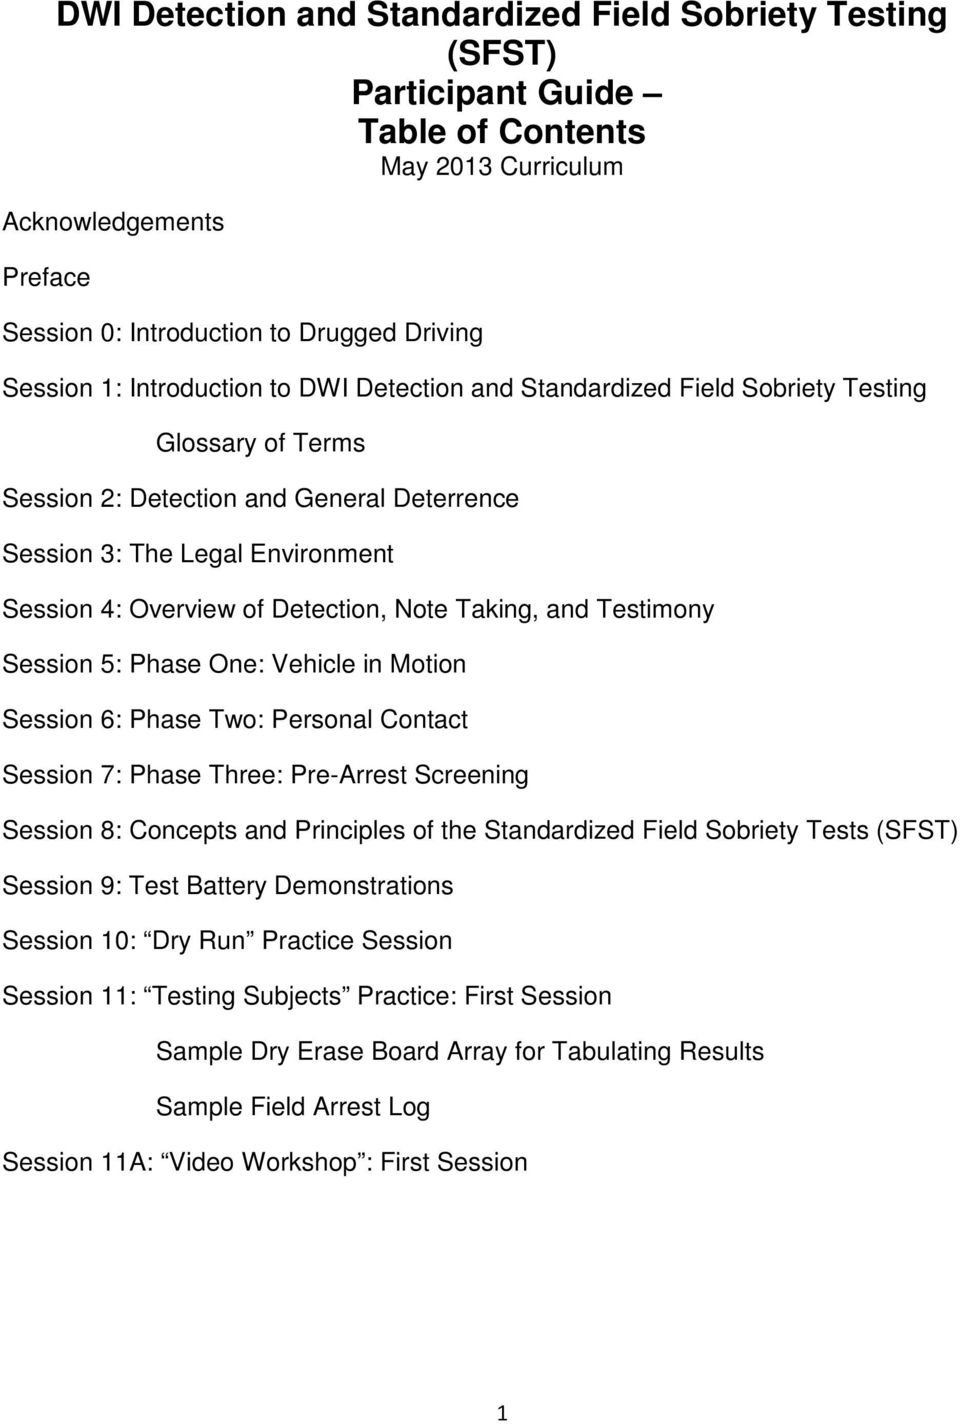 Personal Contact Session 7: Phase Three: Pre-Arrest Screening Session 8: Concepts and Principles of the Standardized Field Sobriety Tests (SFST) Session 9: Test Battery Demonstrations Session